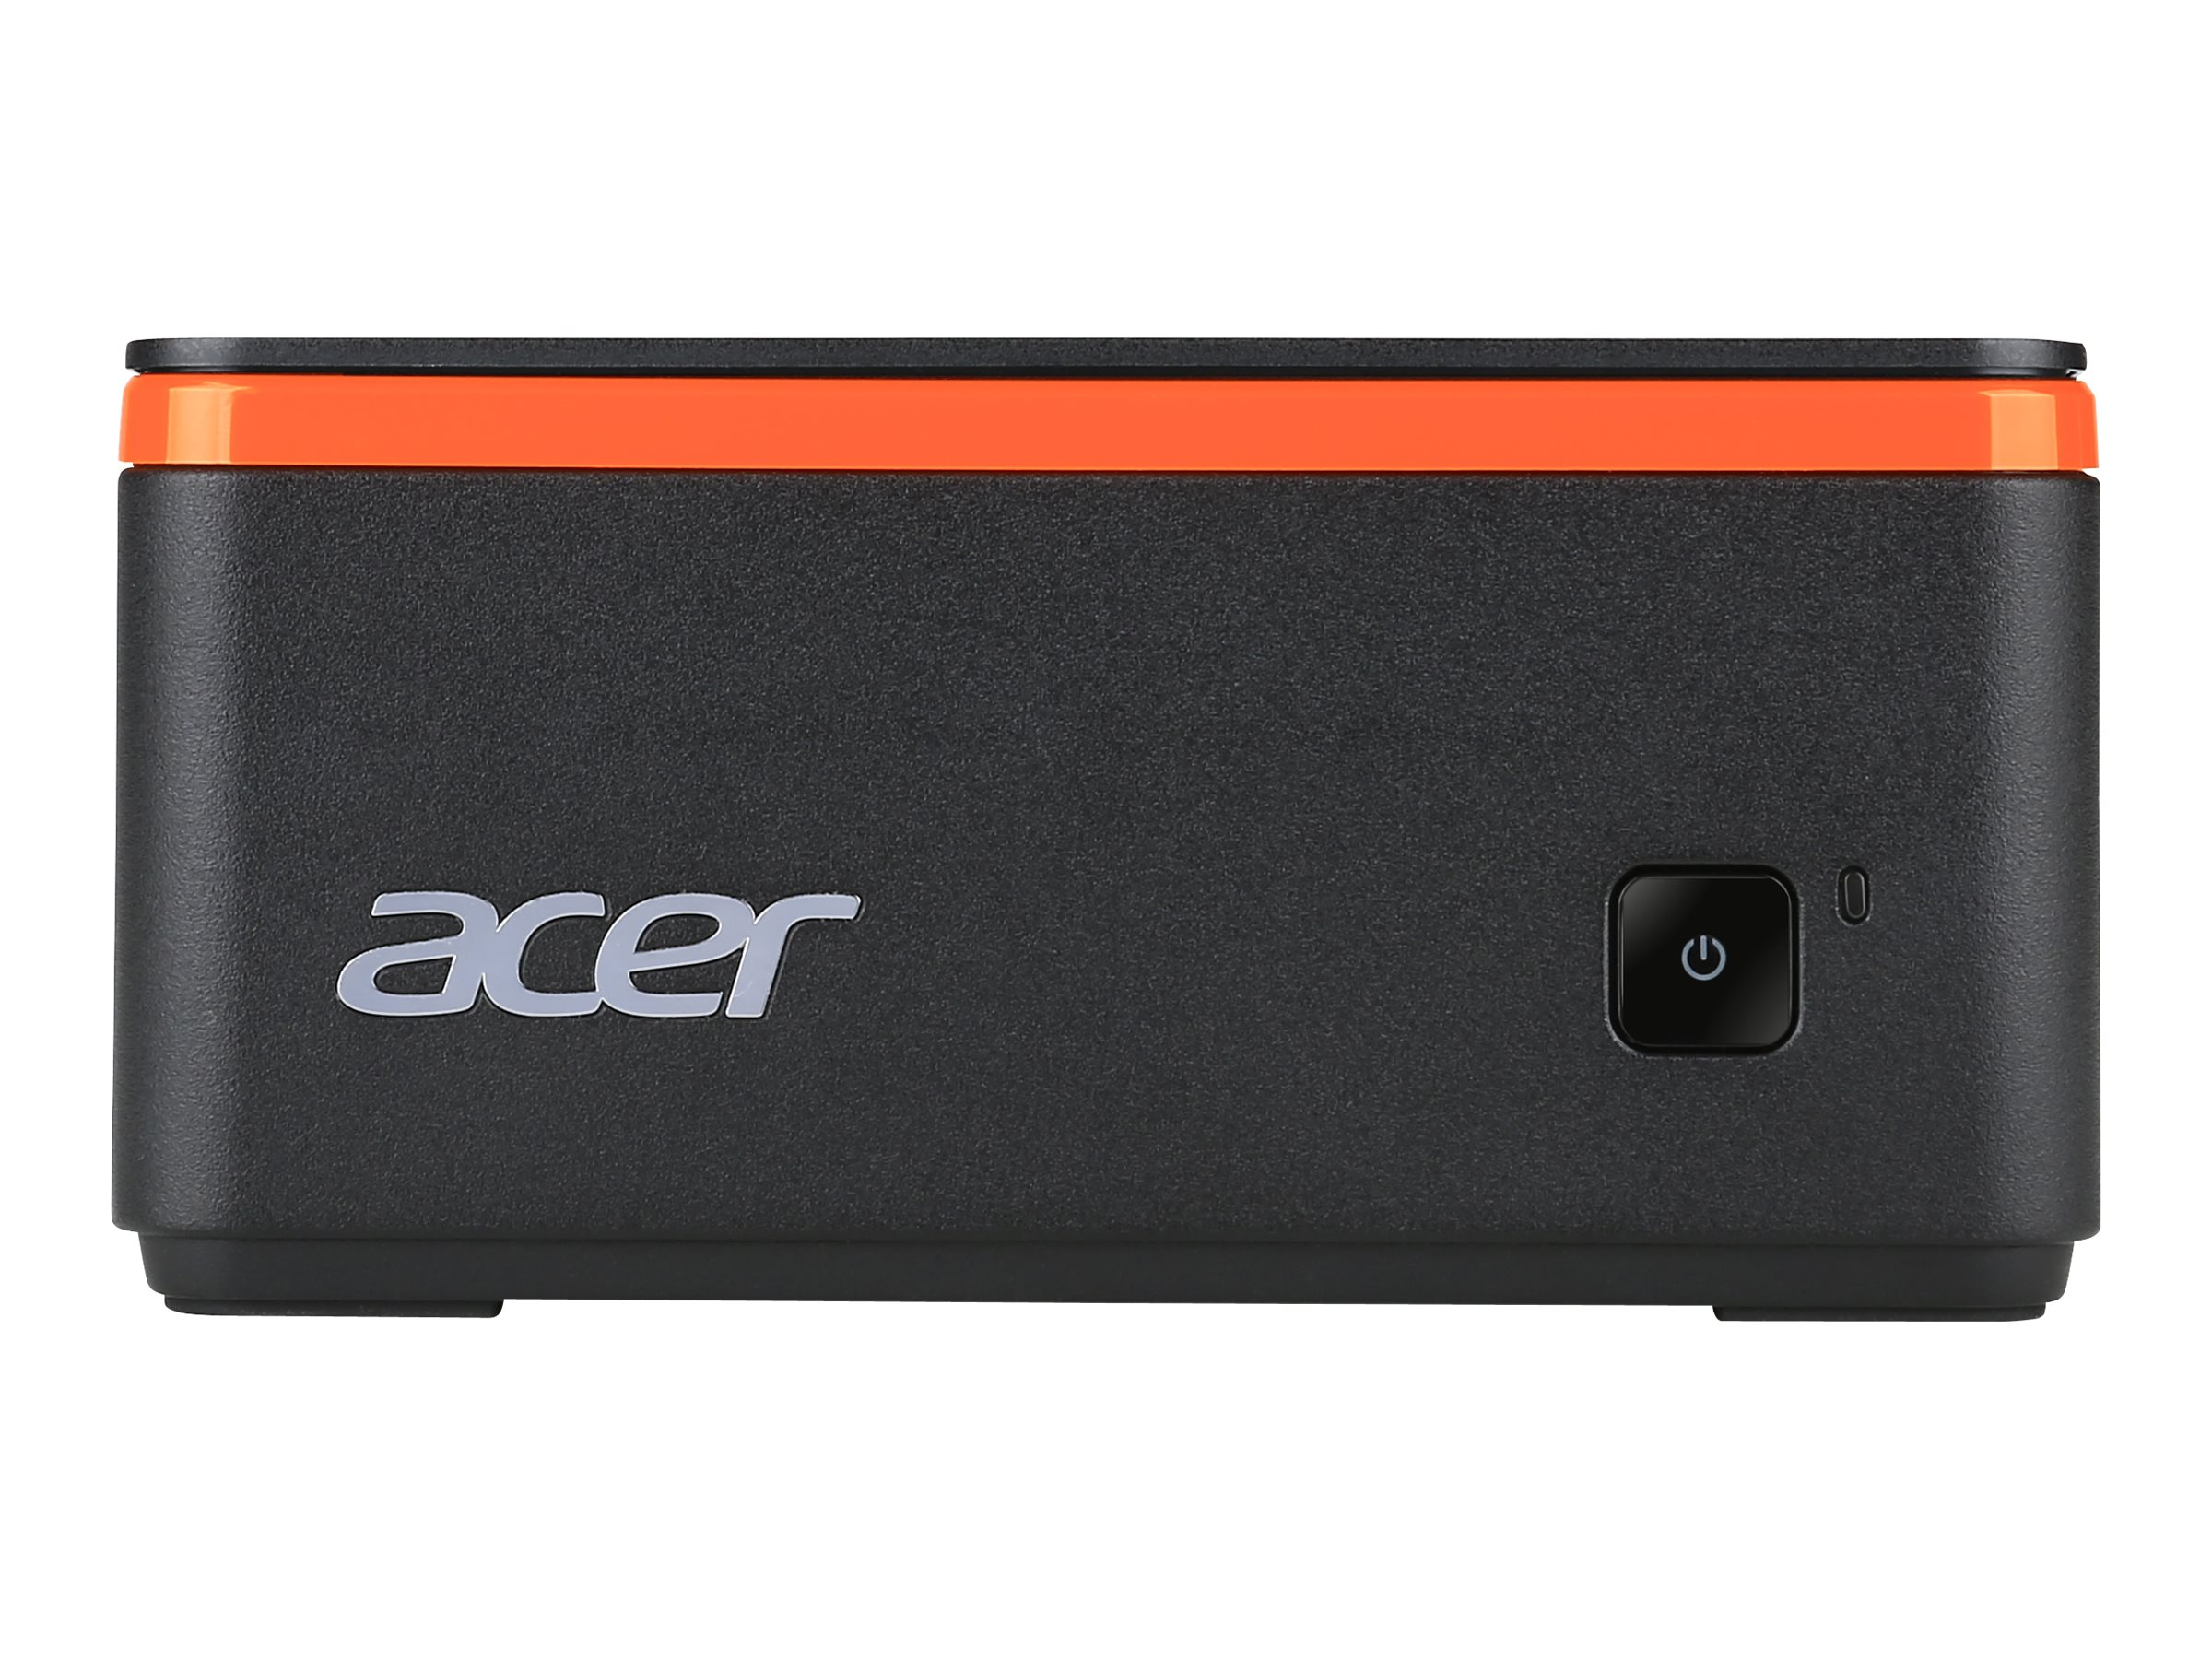 Acer DT.B2AAA.001 Image 3